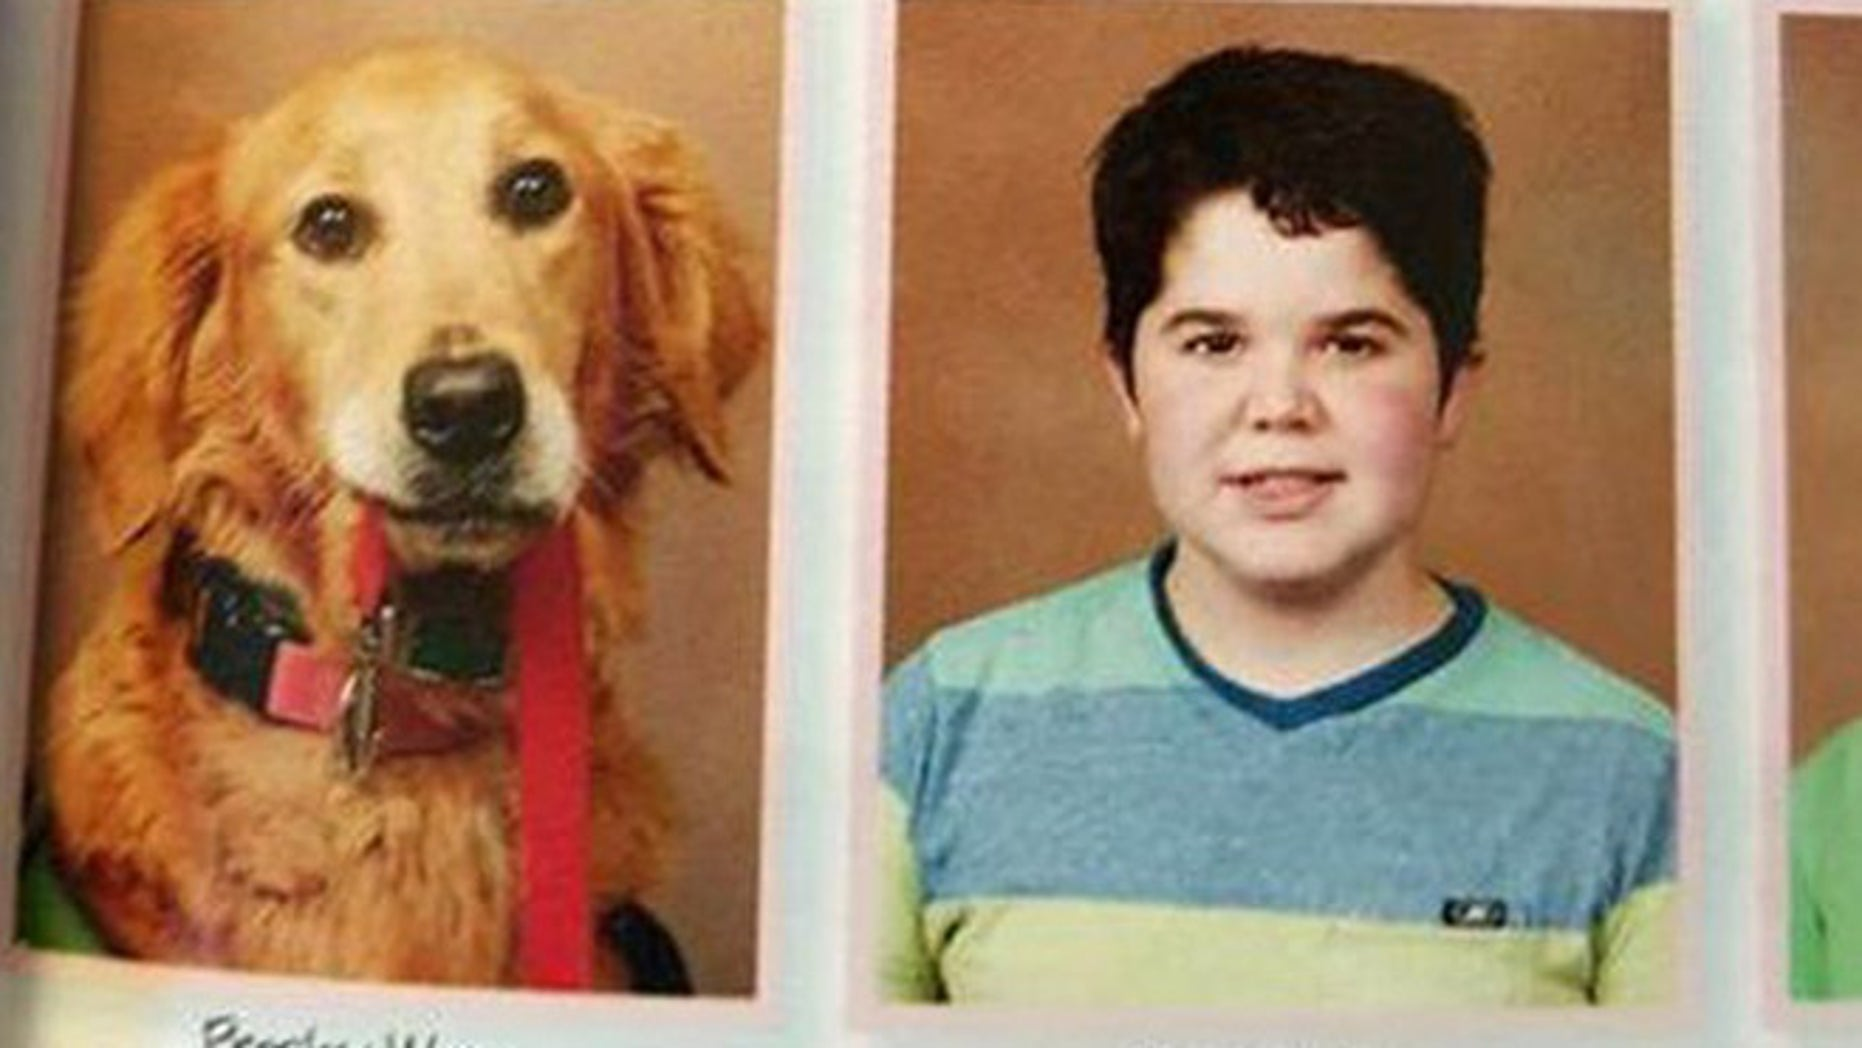 """Presley and Joseph """"Seph"""" Ware in the new yearbook of Good Hope Middle School, in West Monroe, La. (Lori Ware)"""